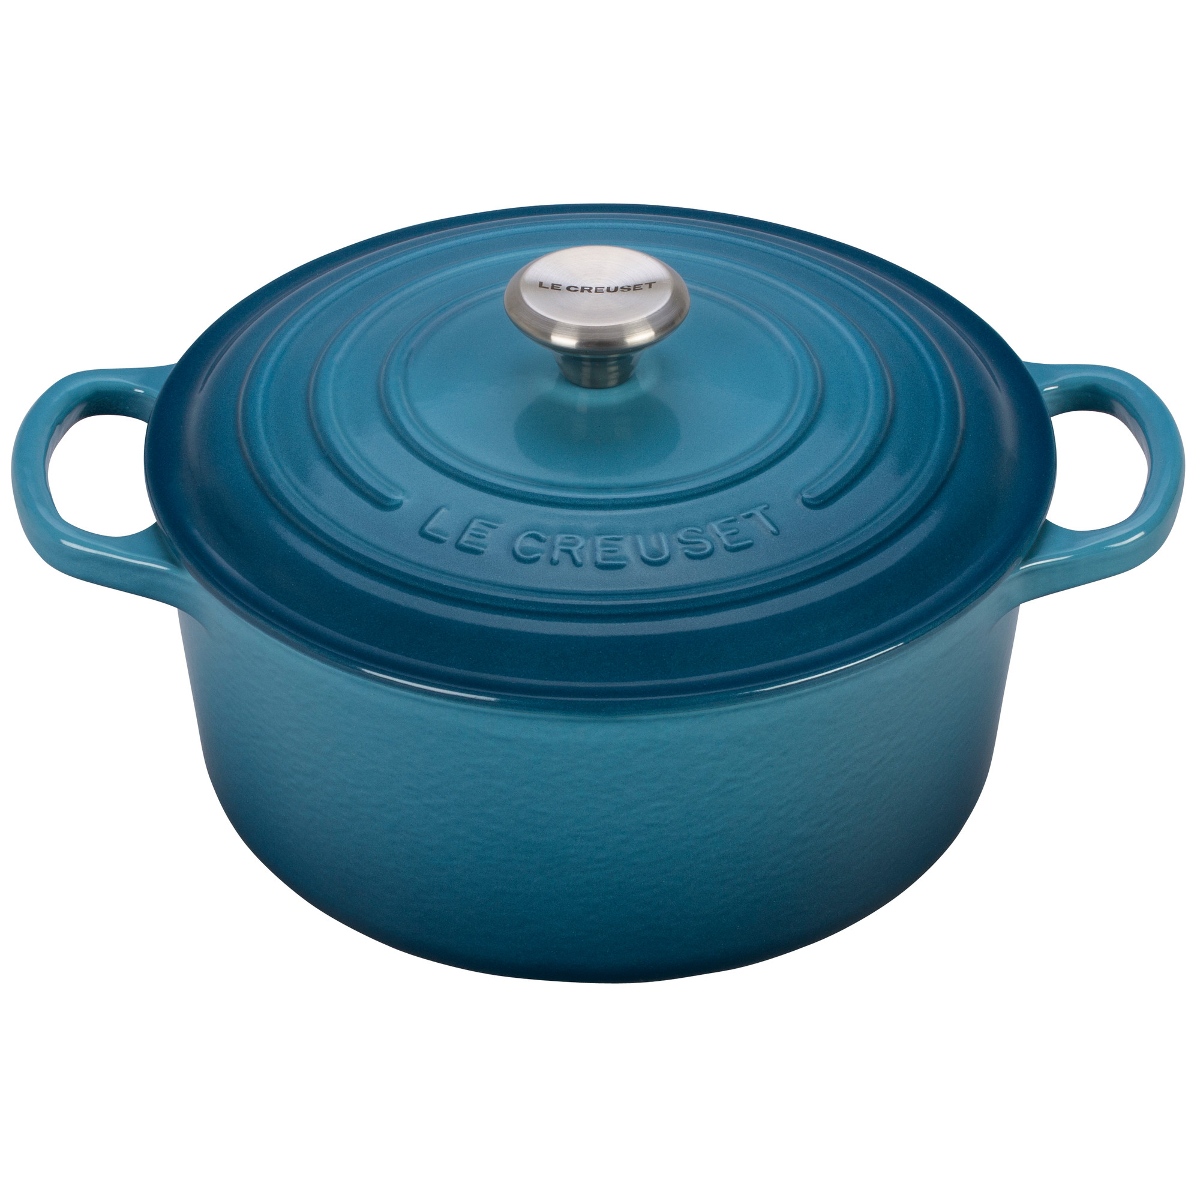 Le Creuset Signature Marine Enameled Cast Iron 3.5 Quart Round French Oven